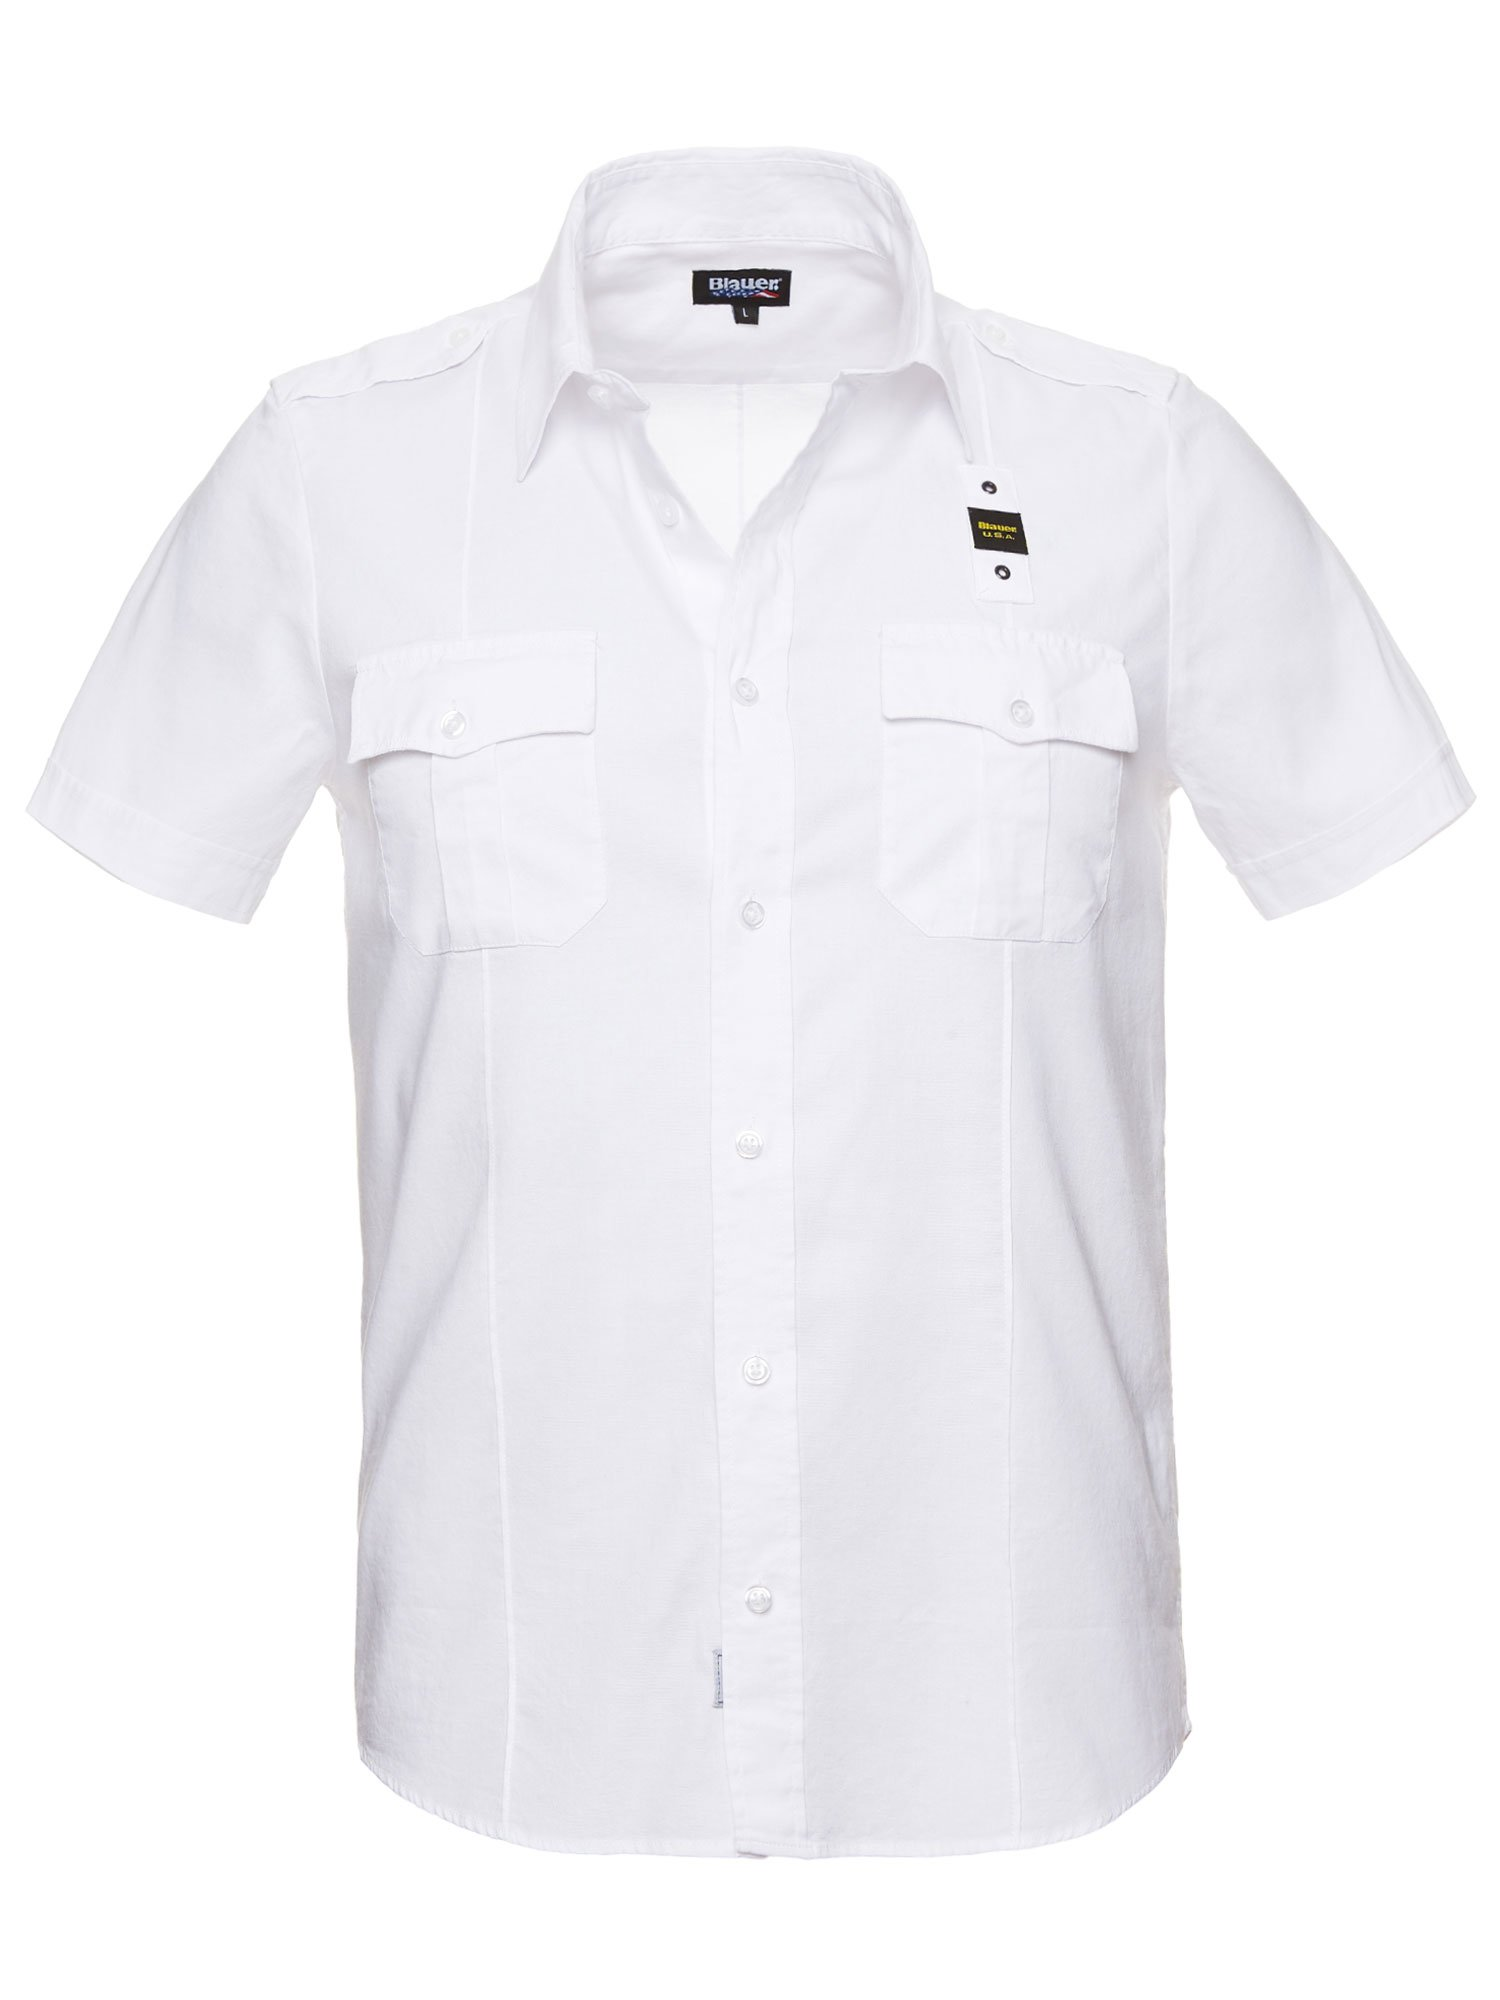 STRETCH OXFORD SHIRT - Blauer